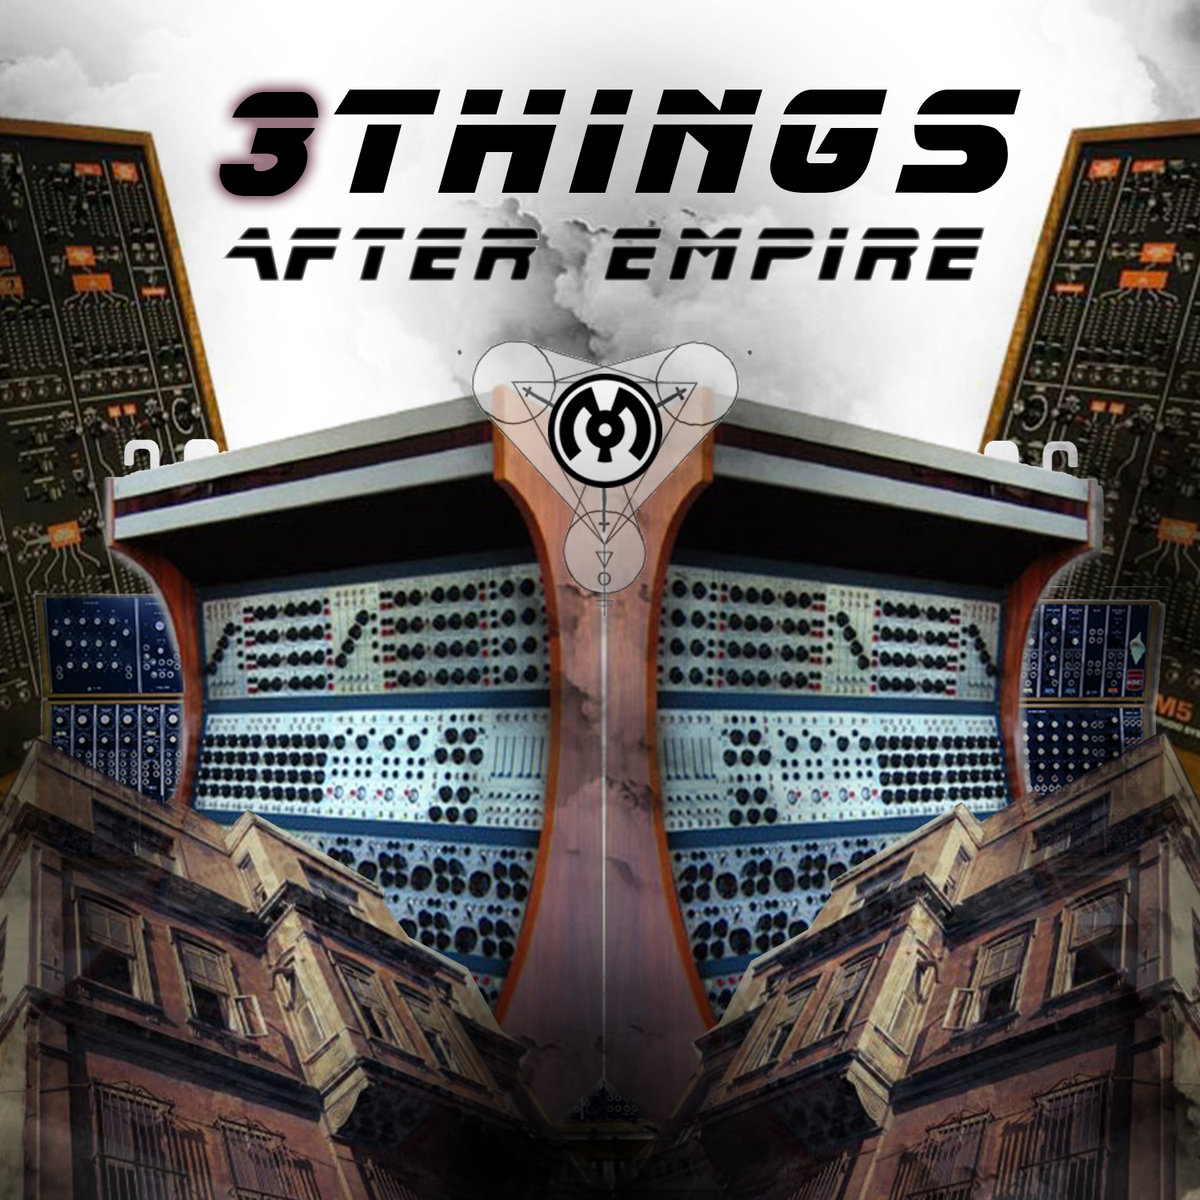 After Empire - rED @ '3 Things' album (electronic, trap)